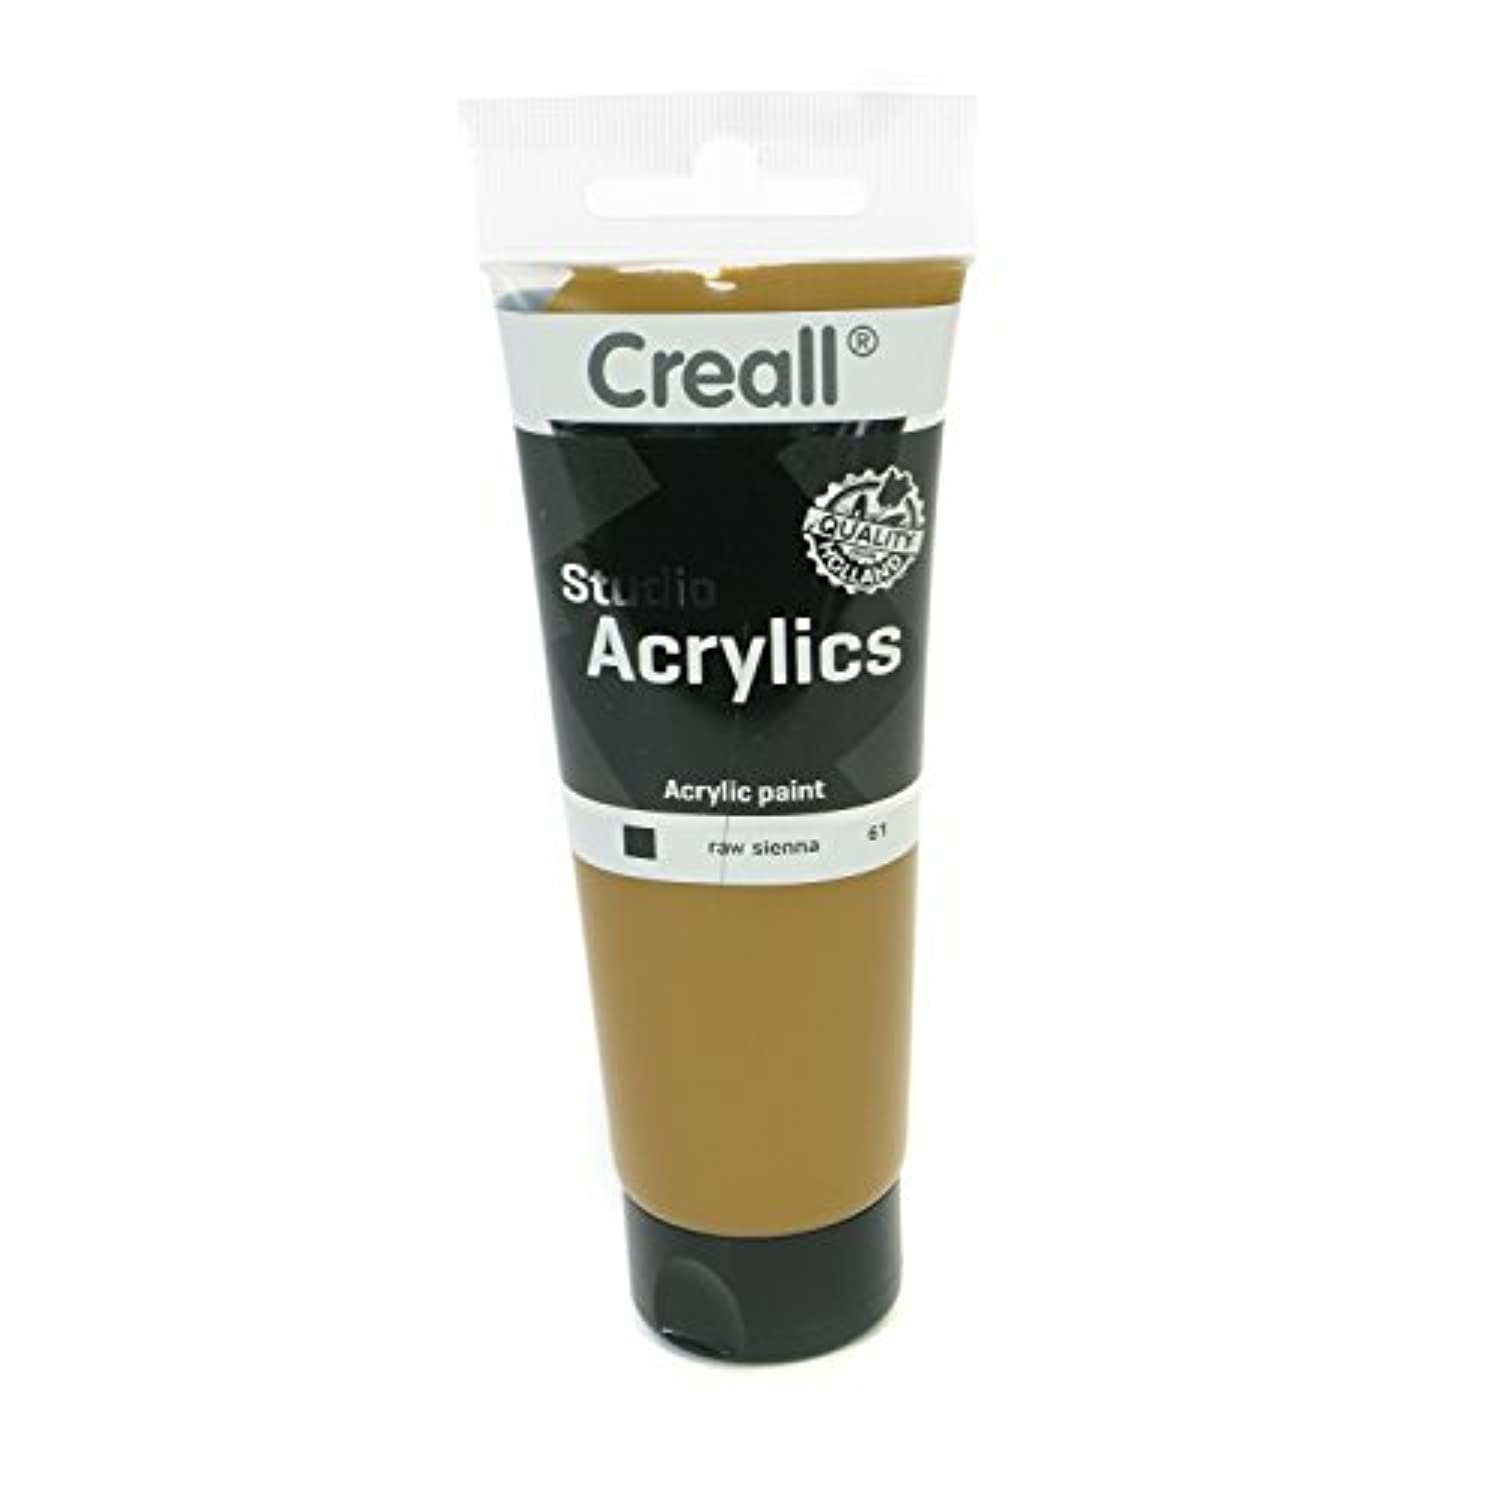 American Educational Products A-33761 Creall-Studio-Acrylics Tube 120Ml 61 Raw Sienna